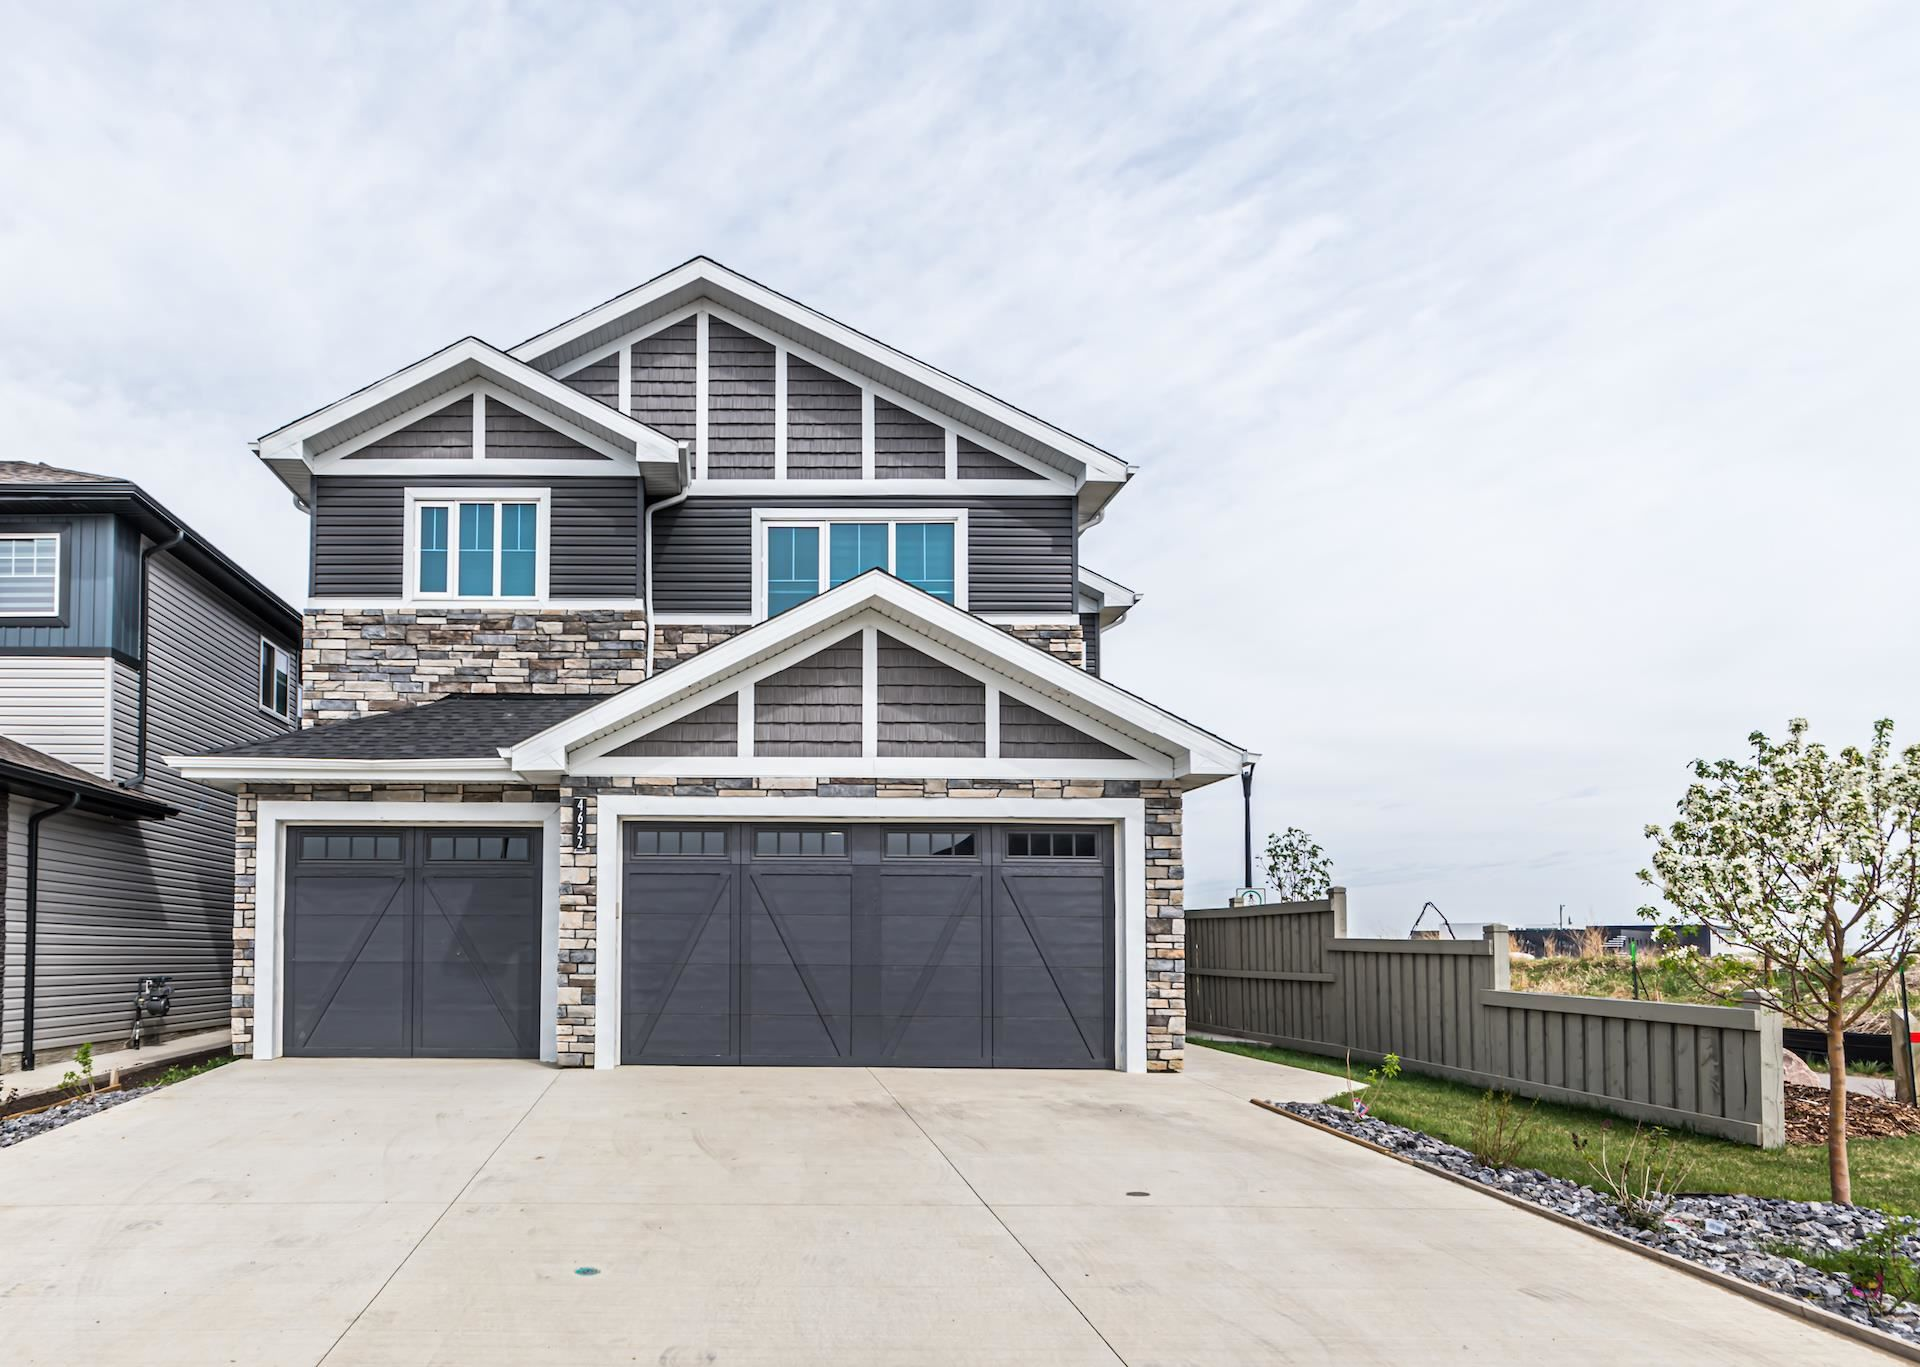 Main Photo: 4622 CHARLES Way in Edmonton: Zone 55 House for sale : MLS®# E4245720